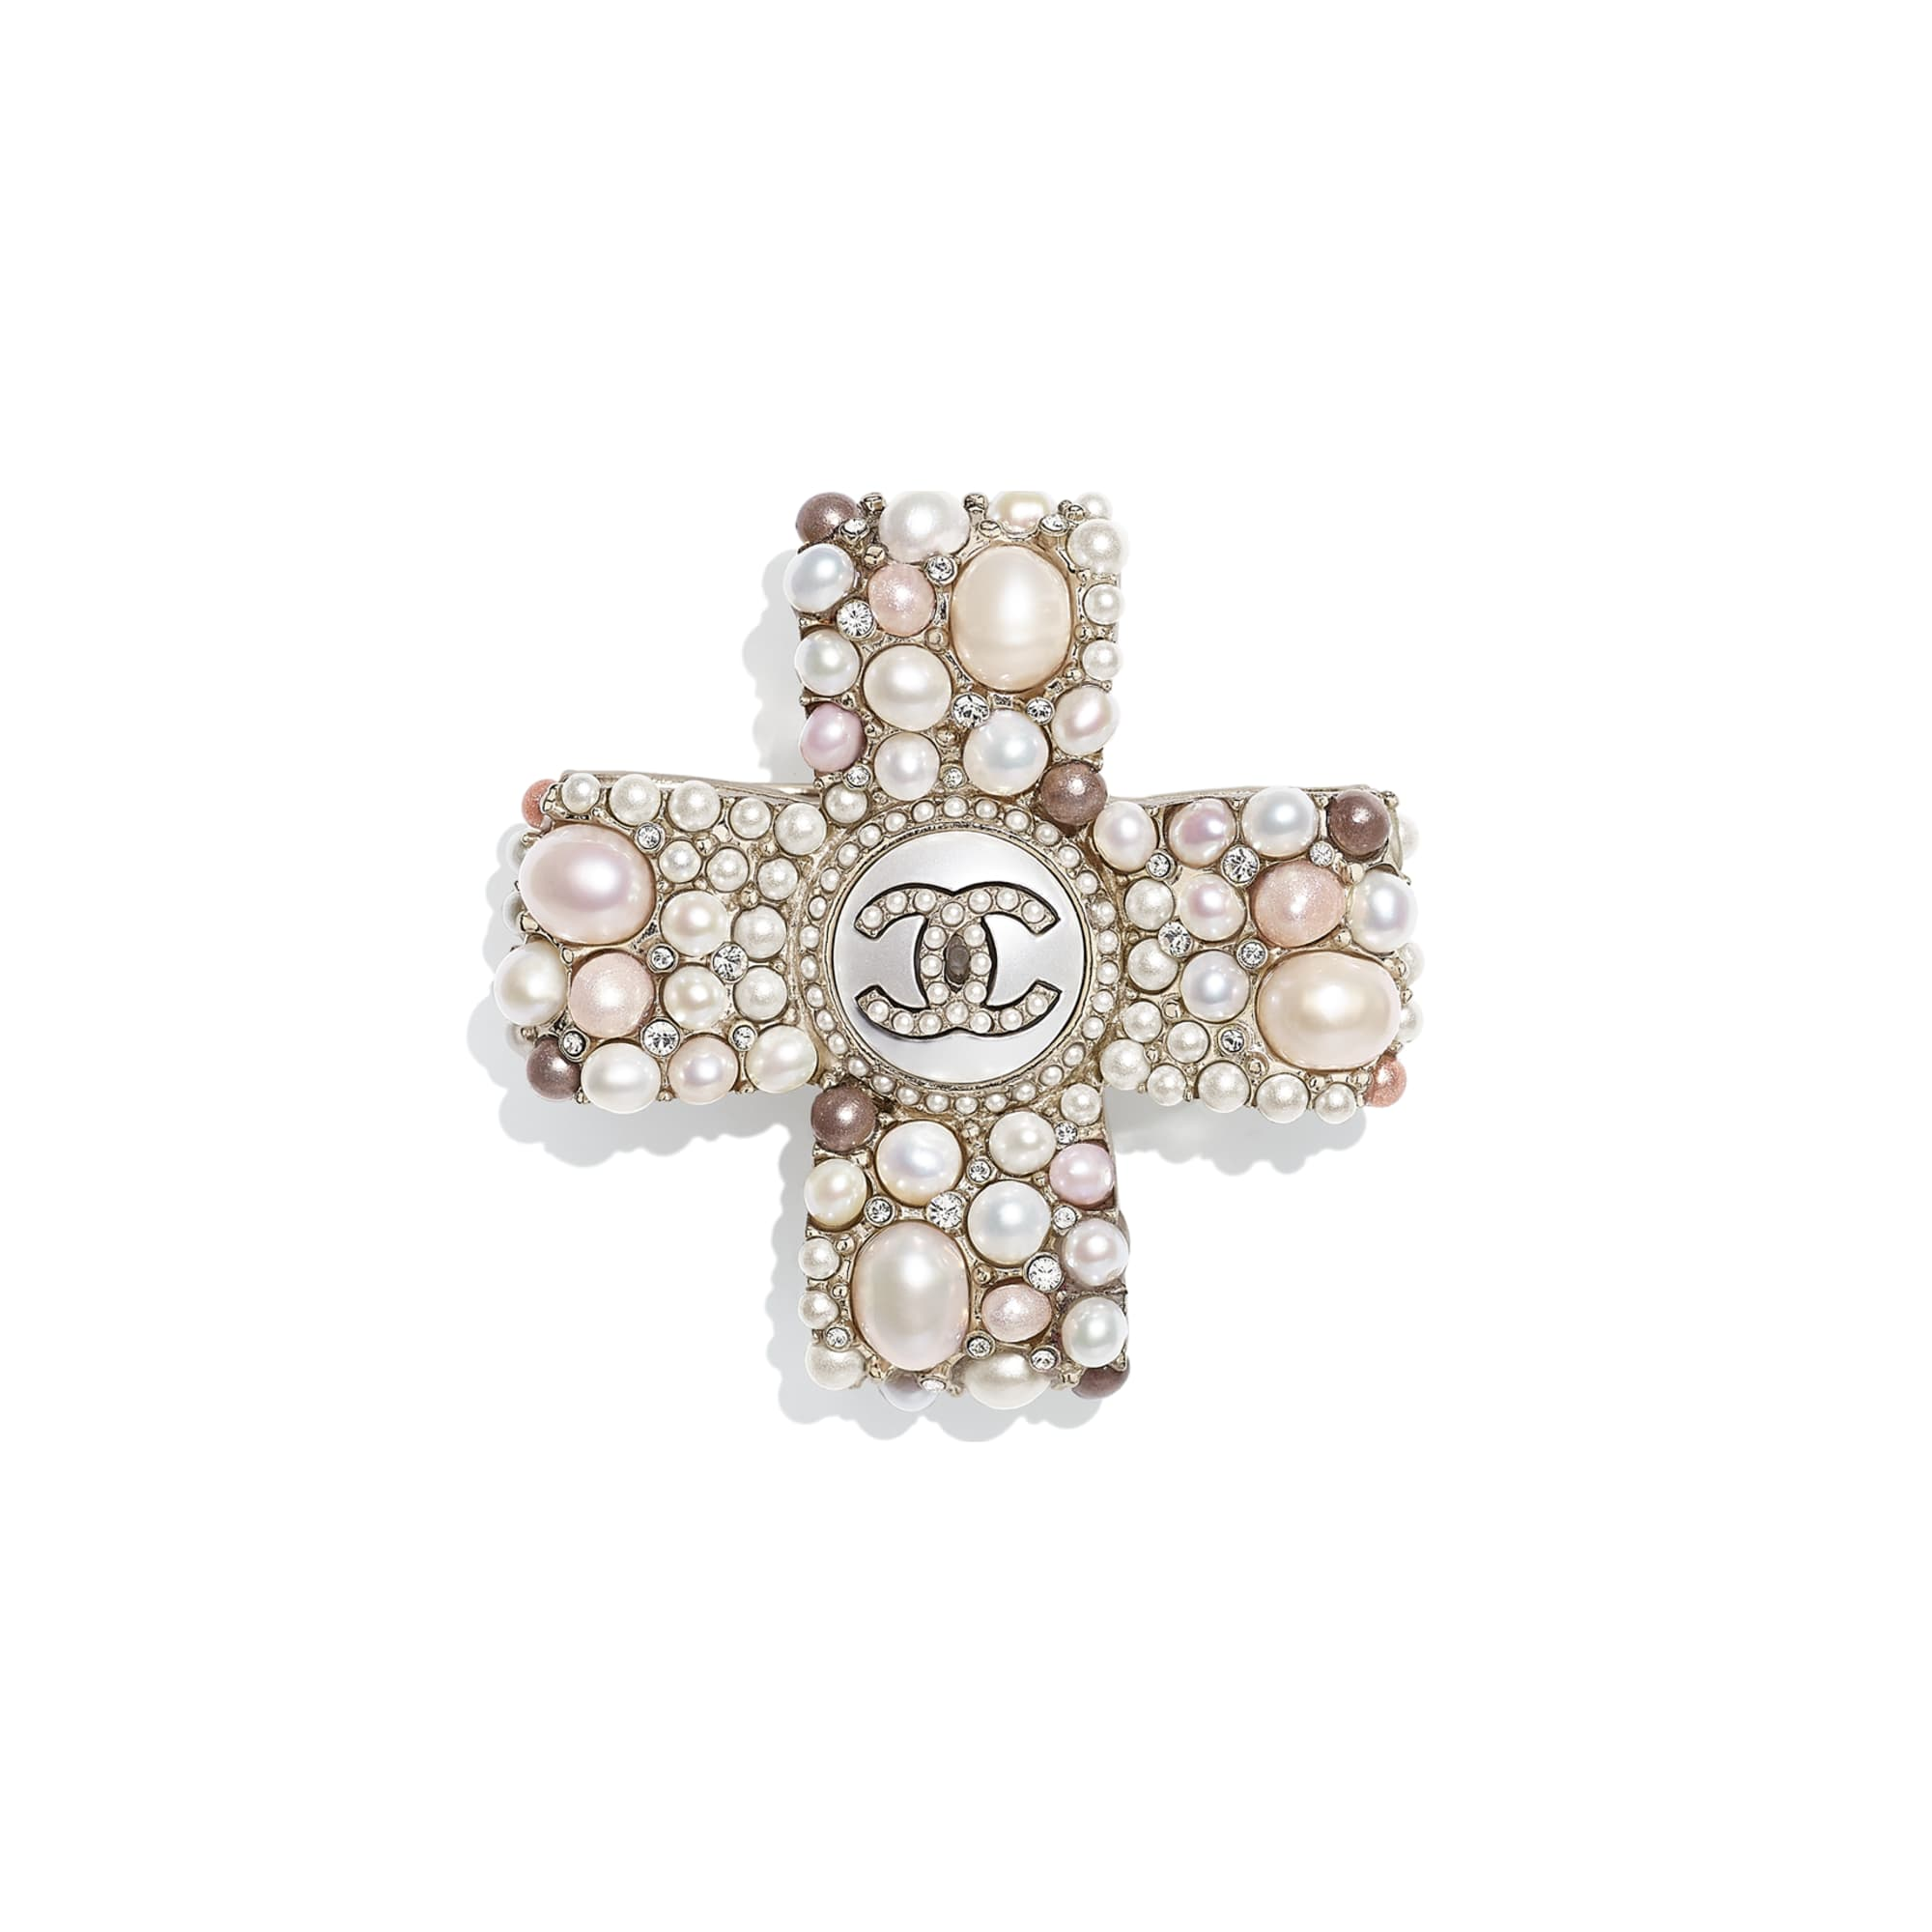 Brooch - Gold, Pearly White, Pink & Crystal - Metal, Cultured Freshwater Pearls, Glass Pearls & Strass - CHANEL - Default view - see standard sized version